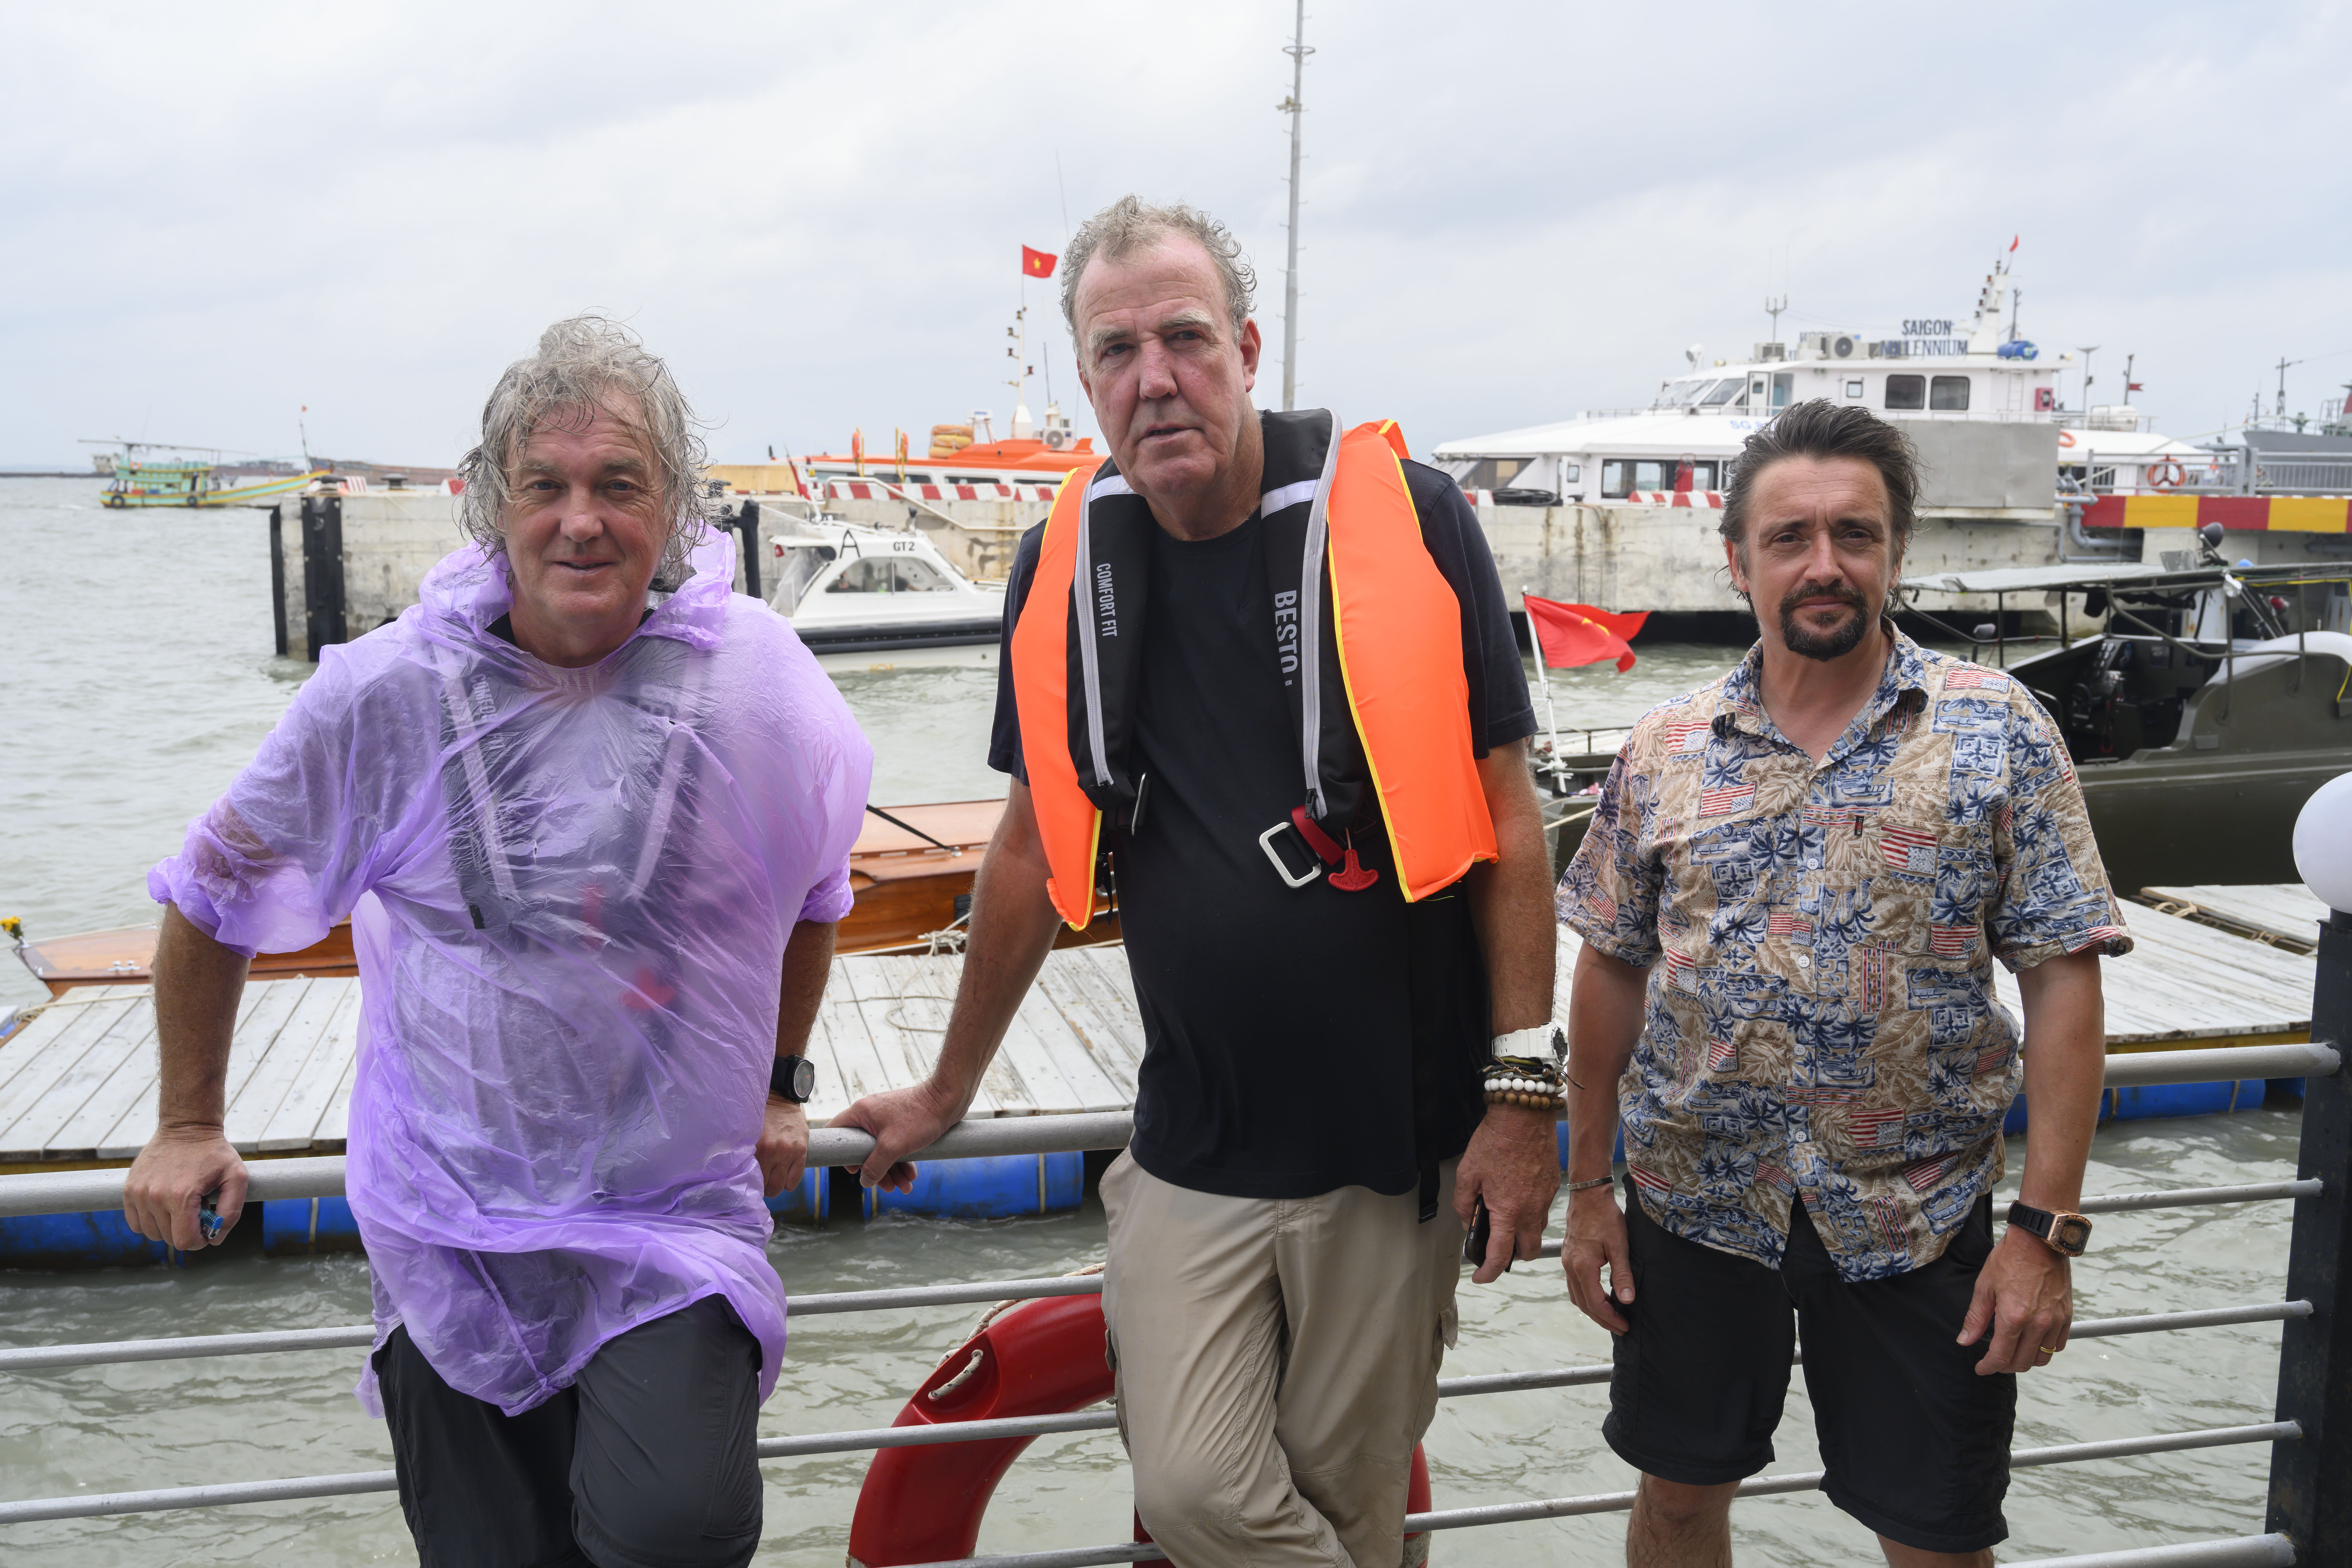 Jeremy Clarkson, James May, Richard Hammond head into choppy waters in The Grand Tour (Photo: Amazon Prime)